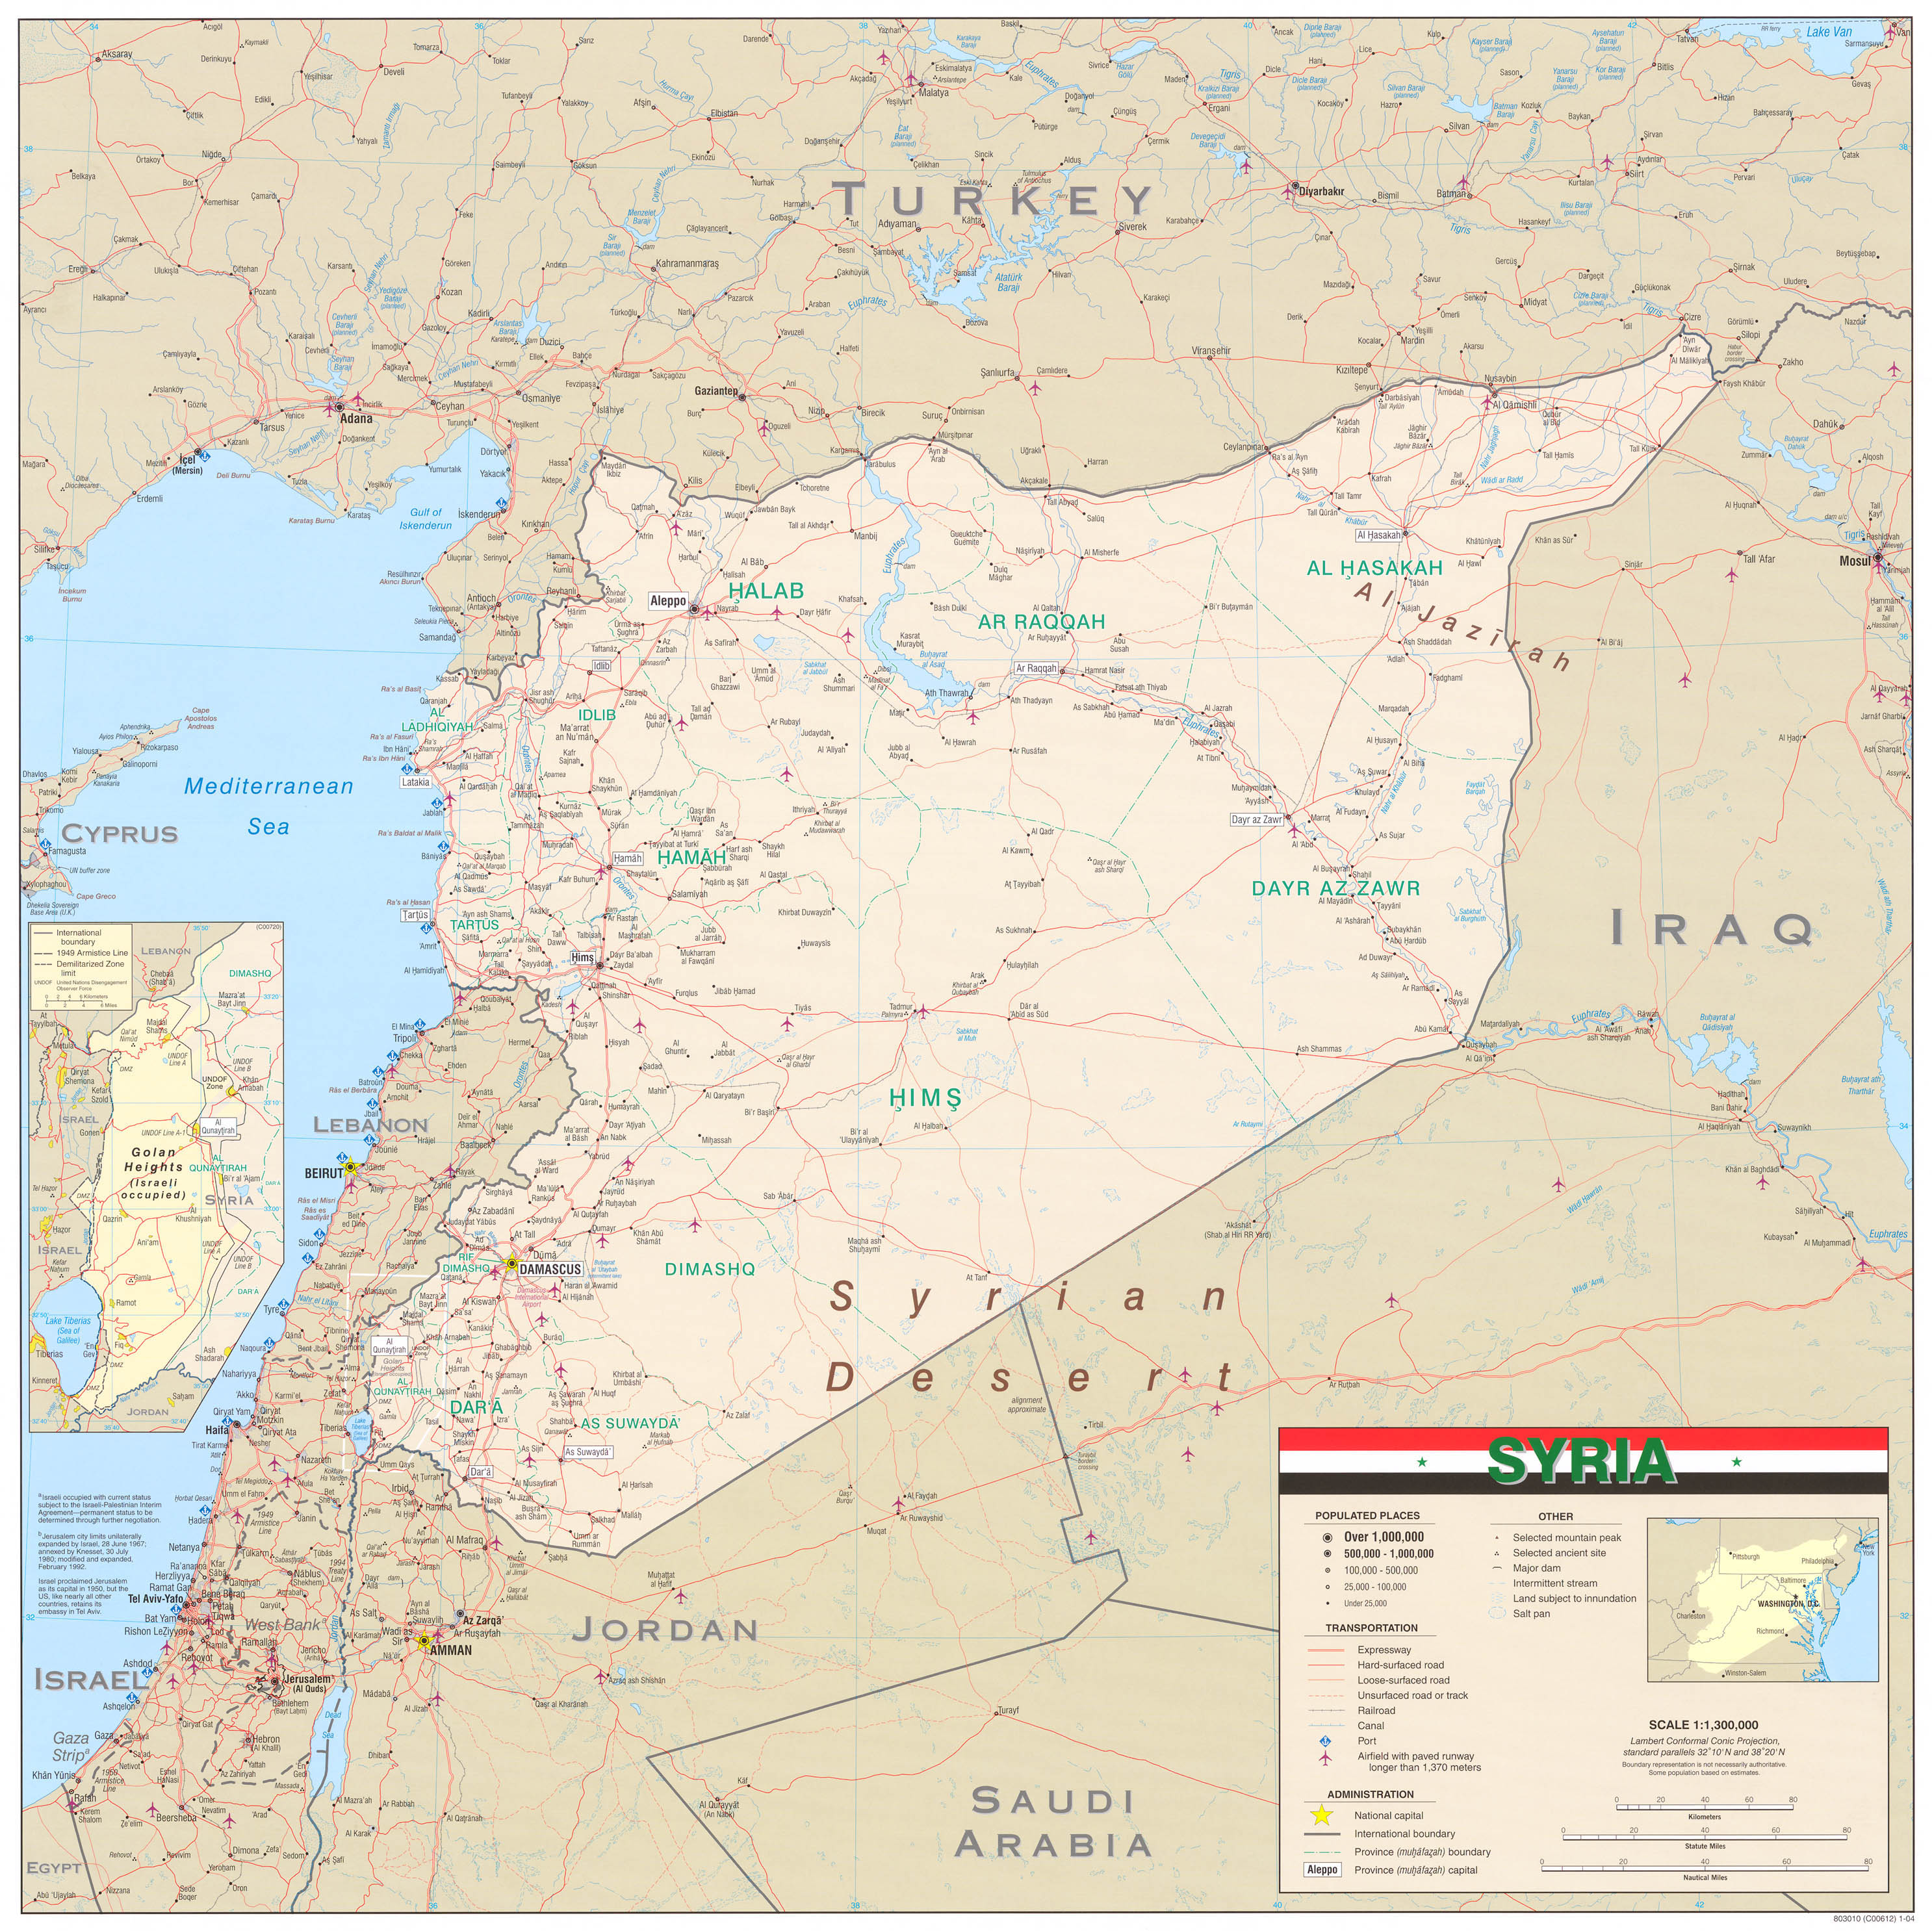 Large detailed road and political map of syria syria large detailed large detailed road and political map of syria syria large detailed road and political map gumiabroncs Gallery